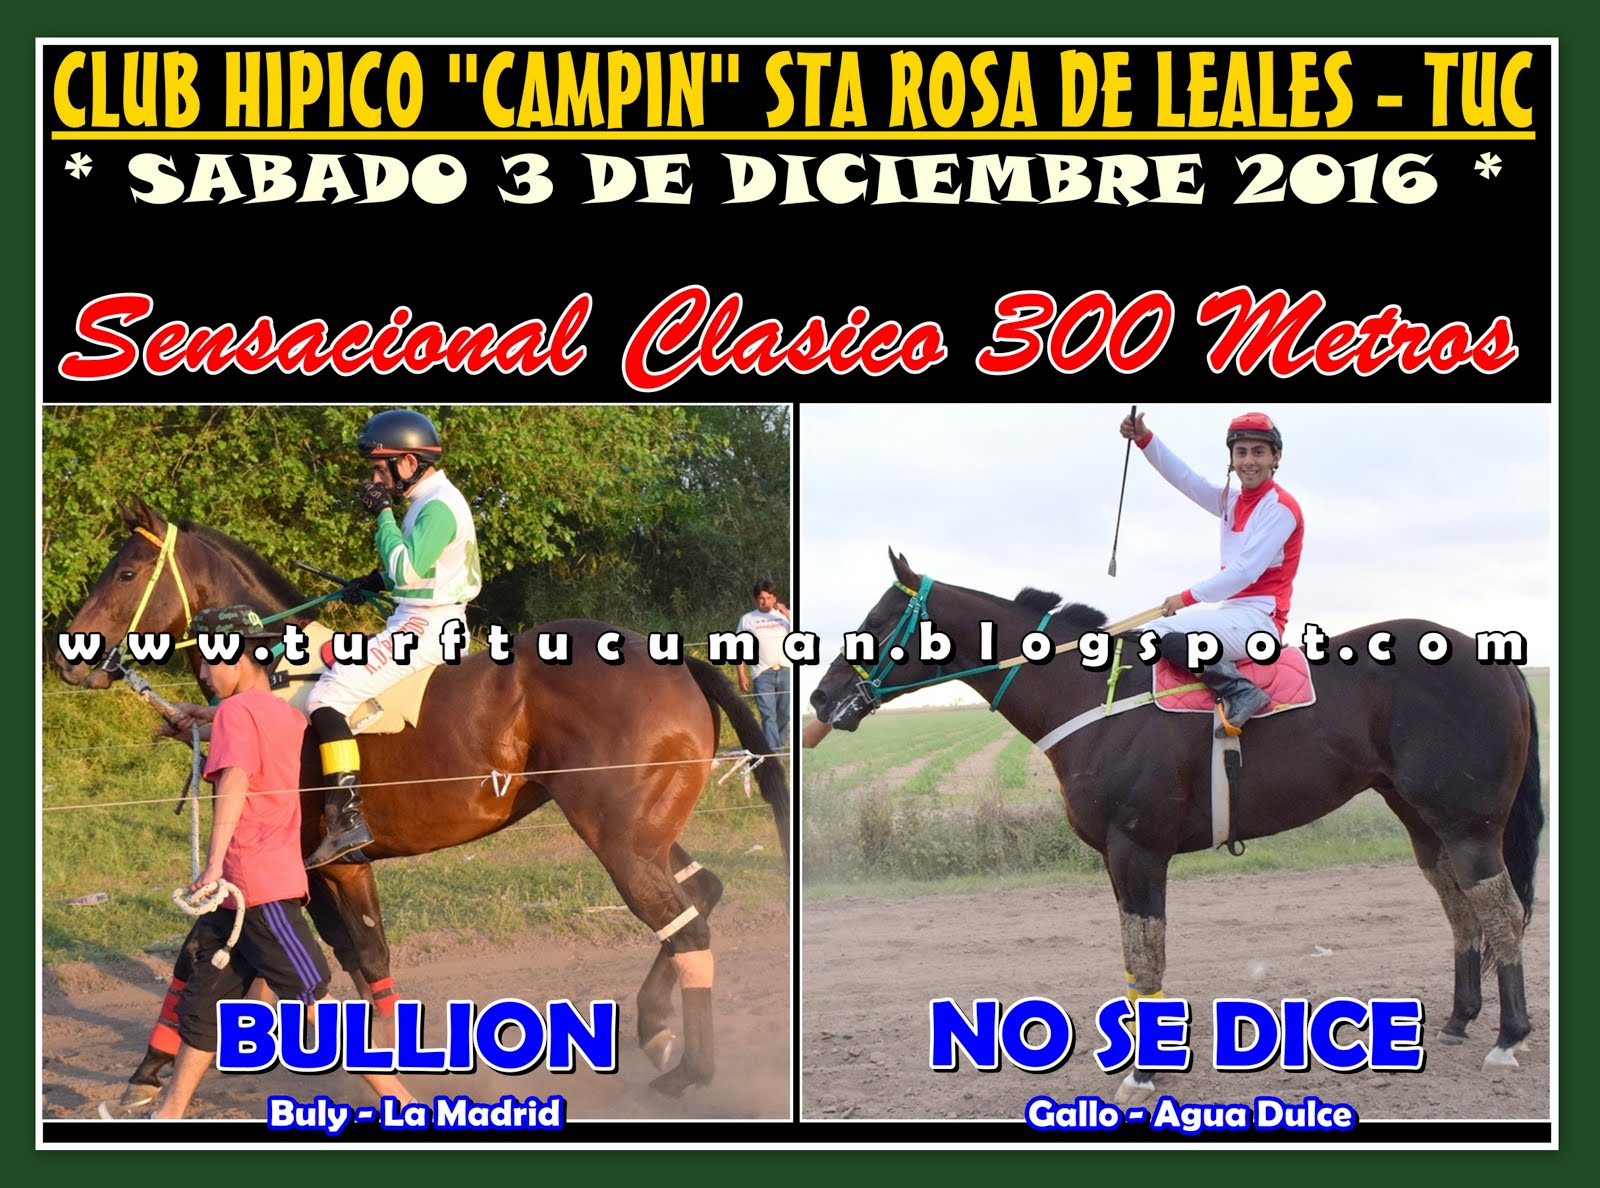 BULLION VS NO SE DICE